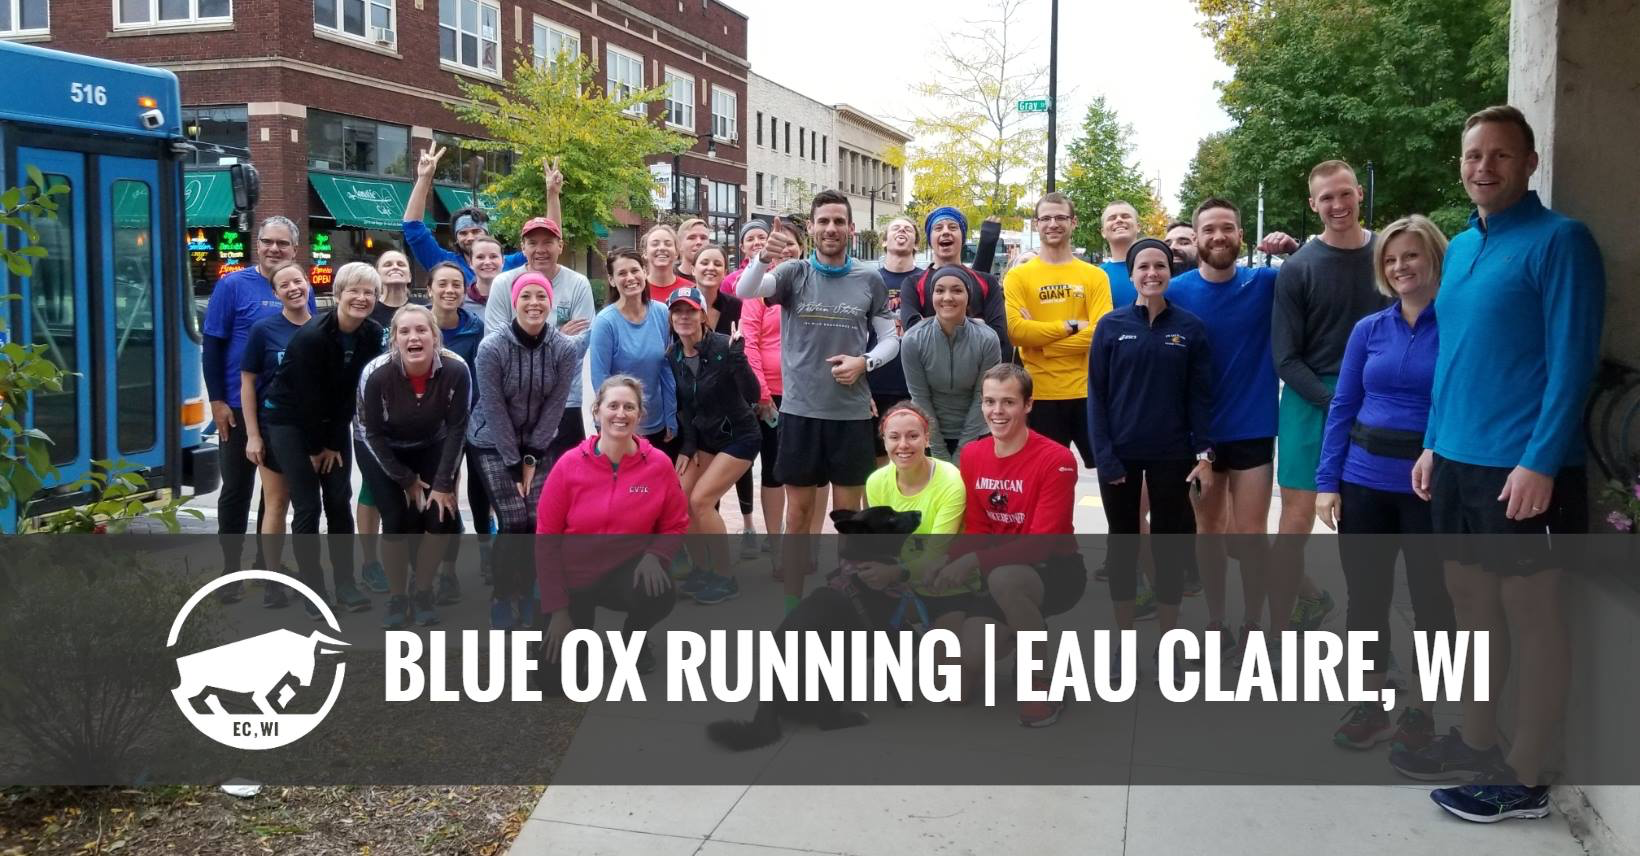 GROUP RUNS - We have a weekly group run on Thursdays @ 6pm! We invite any ability and typically go to about 3.5 to 4 miles with an option to add-on an additional 1-2 miles by the end of the route. Come for the run and stay for a relaxed social atmosphere - we typically hang out a bit afterwards and do 15 minutes of core / strength exercises afterwards as well.Check future dates and special events here - blueox.run/thursday